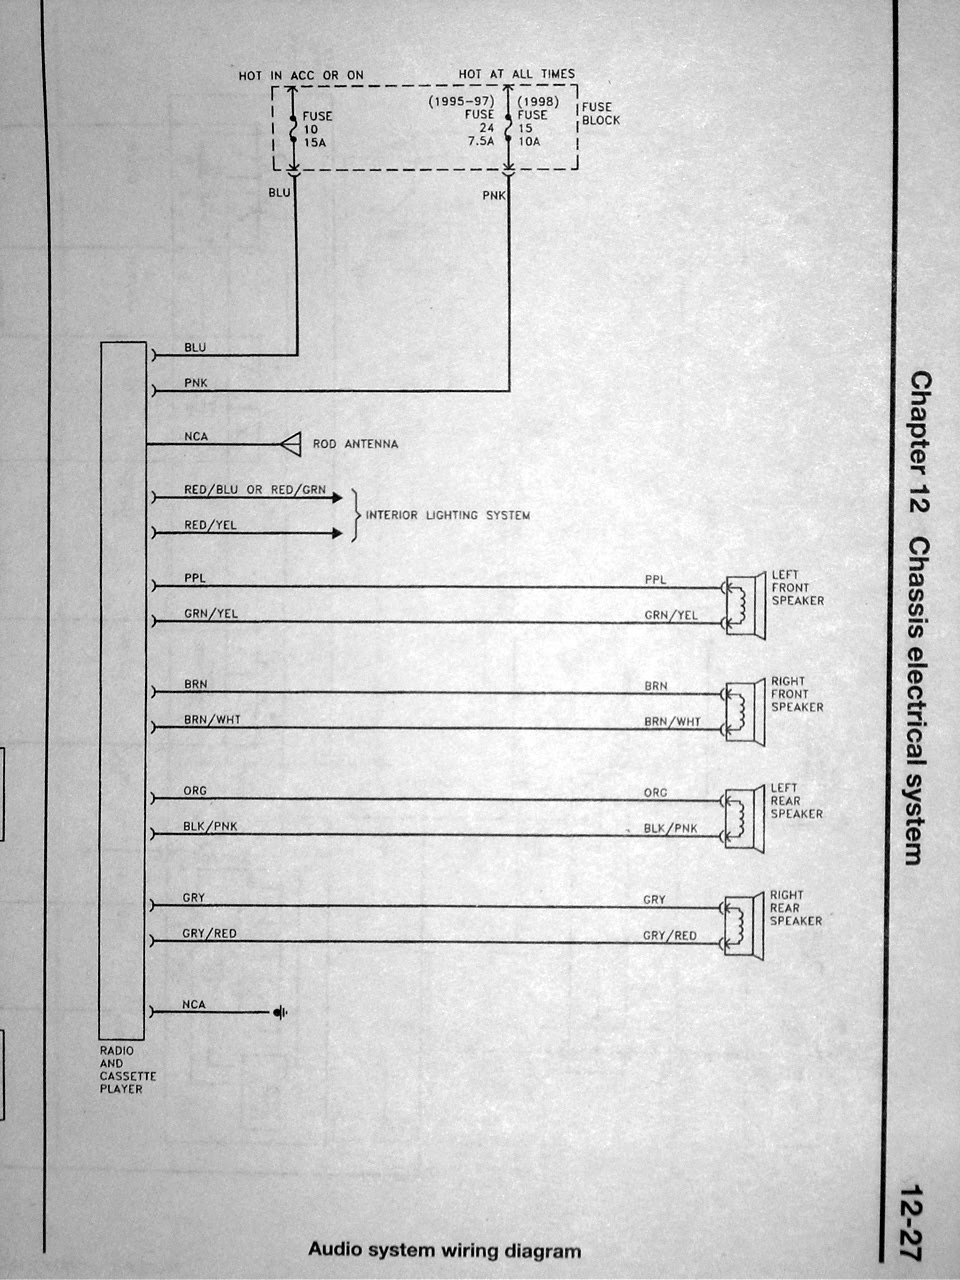 Wiring Diagram For 2003 Nissan Sentra Wiring Diagram Productive Productive Zaafran It